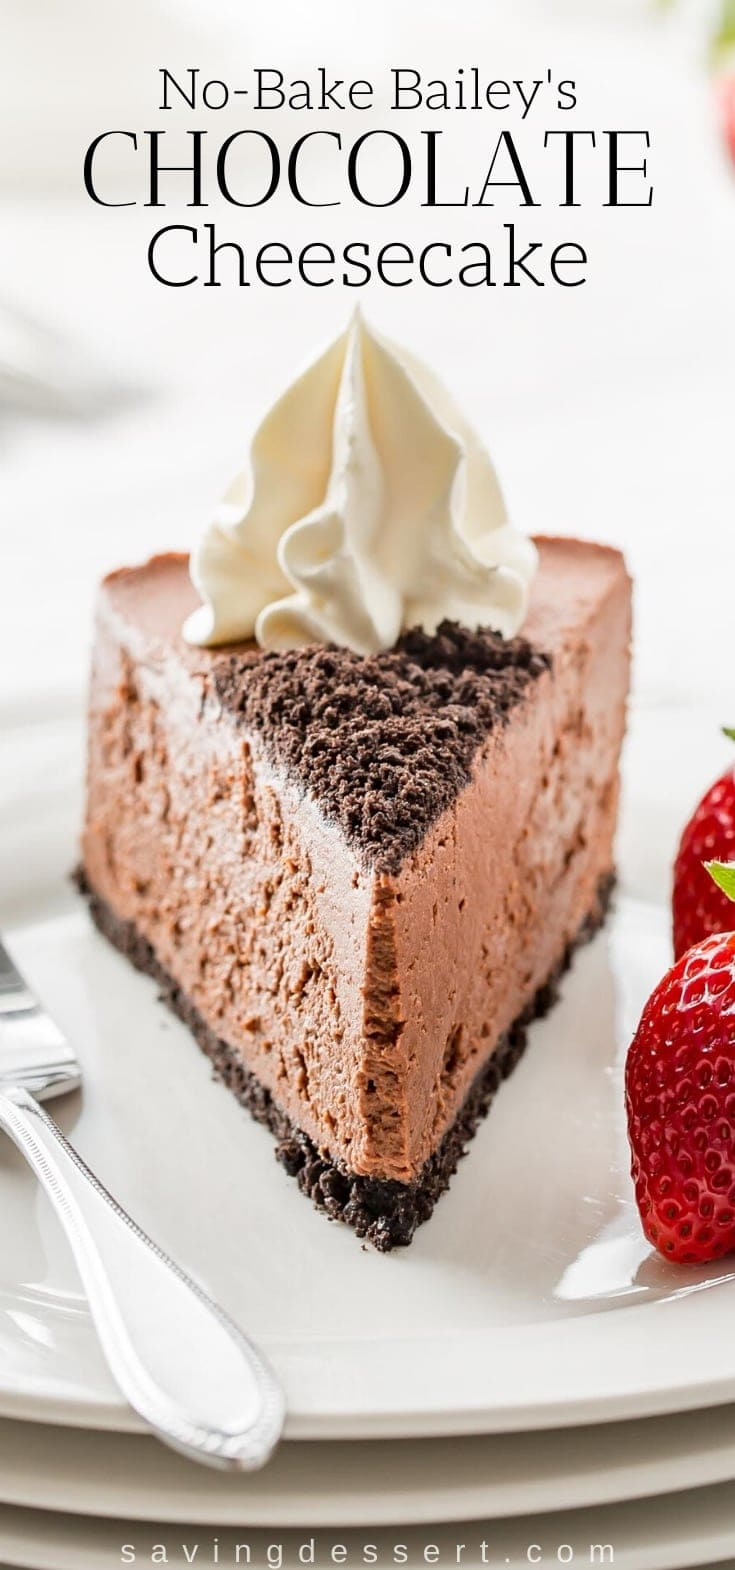 A slice of chocolate cheesecake topped with whipped cream